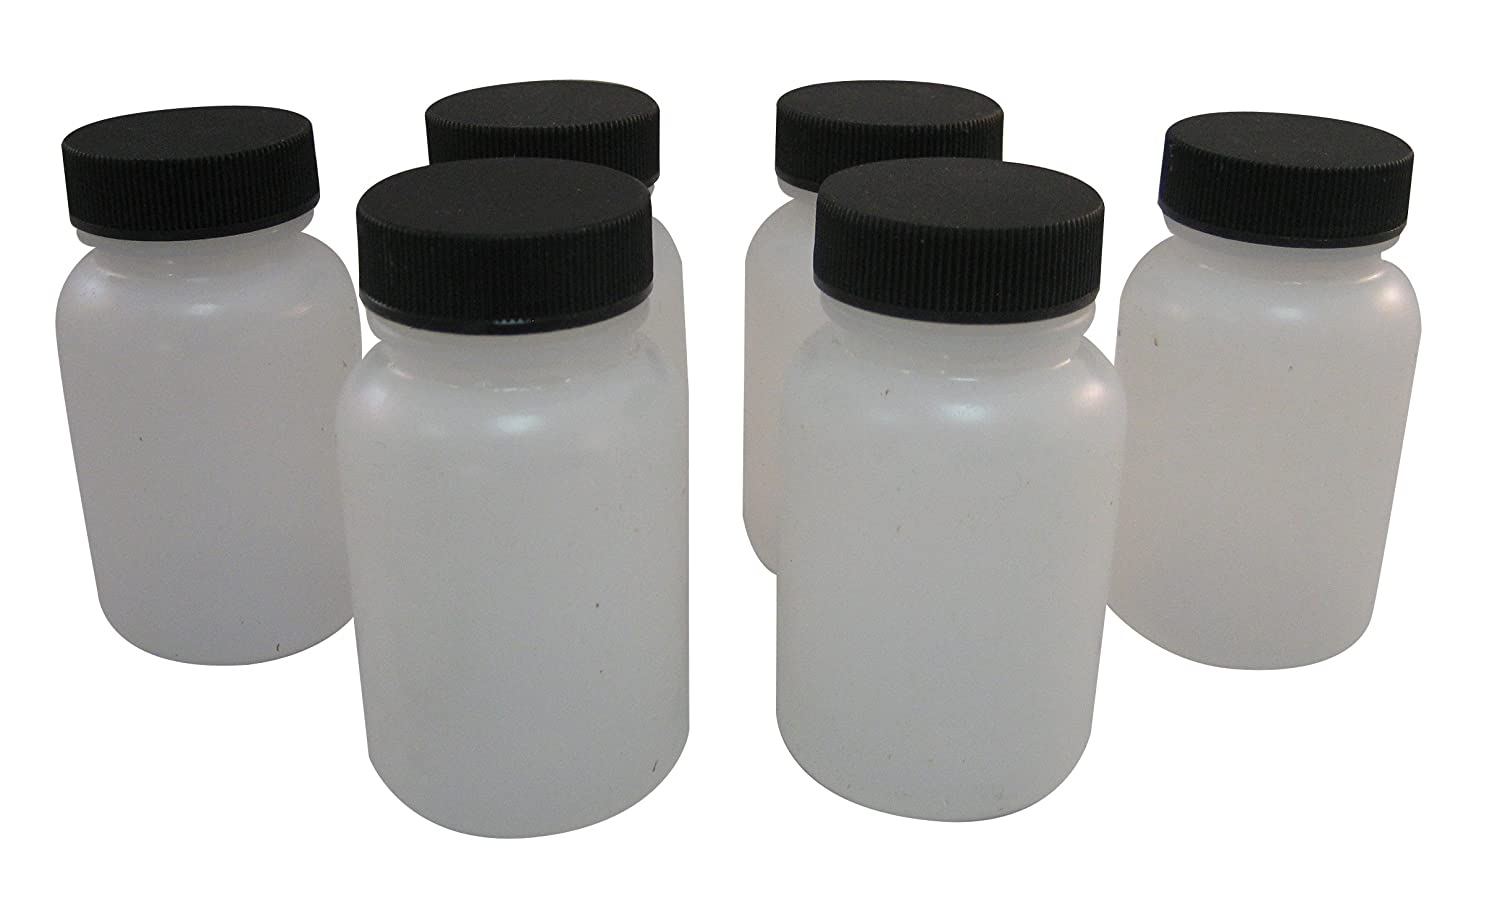 Box of 6 Badger Air-Brush Co 51-0054B 3-Ounce Plastic Jar and Cover